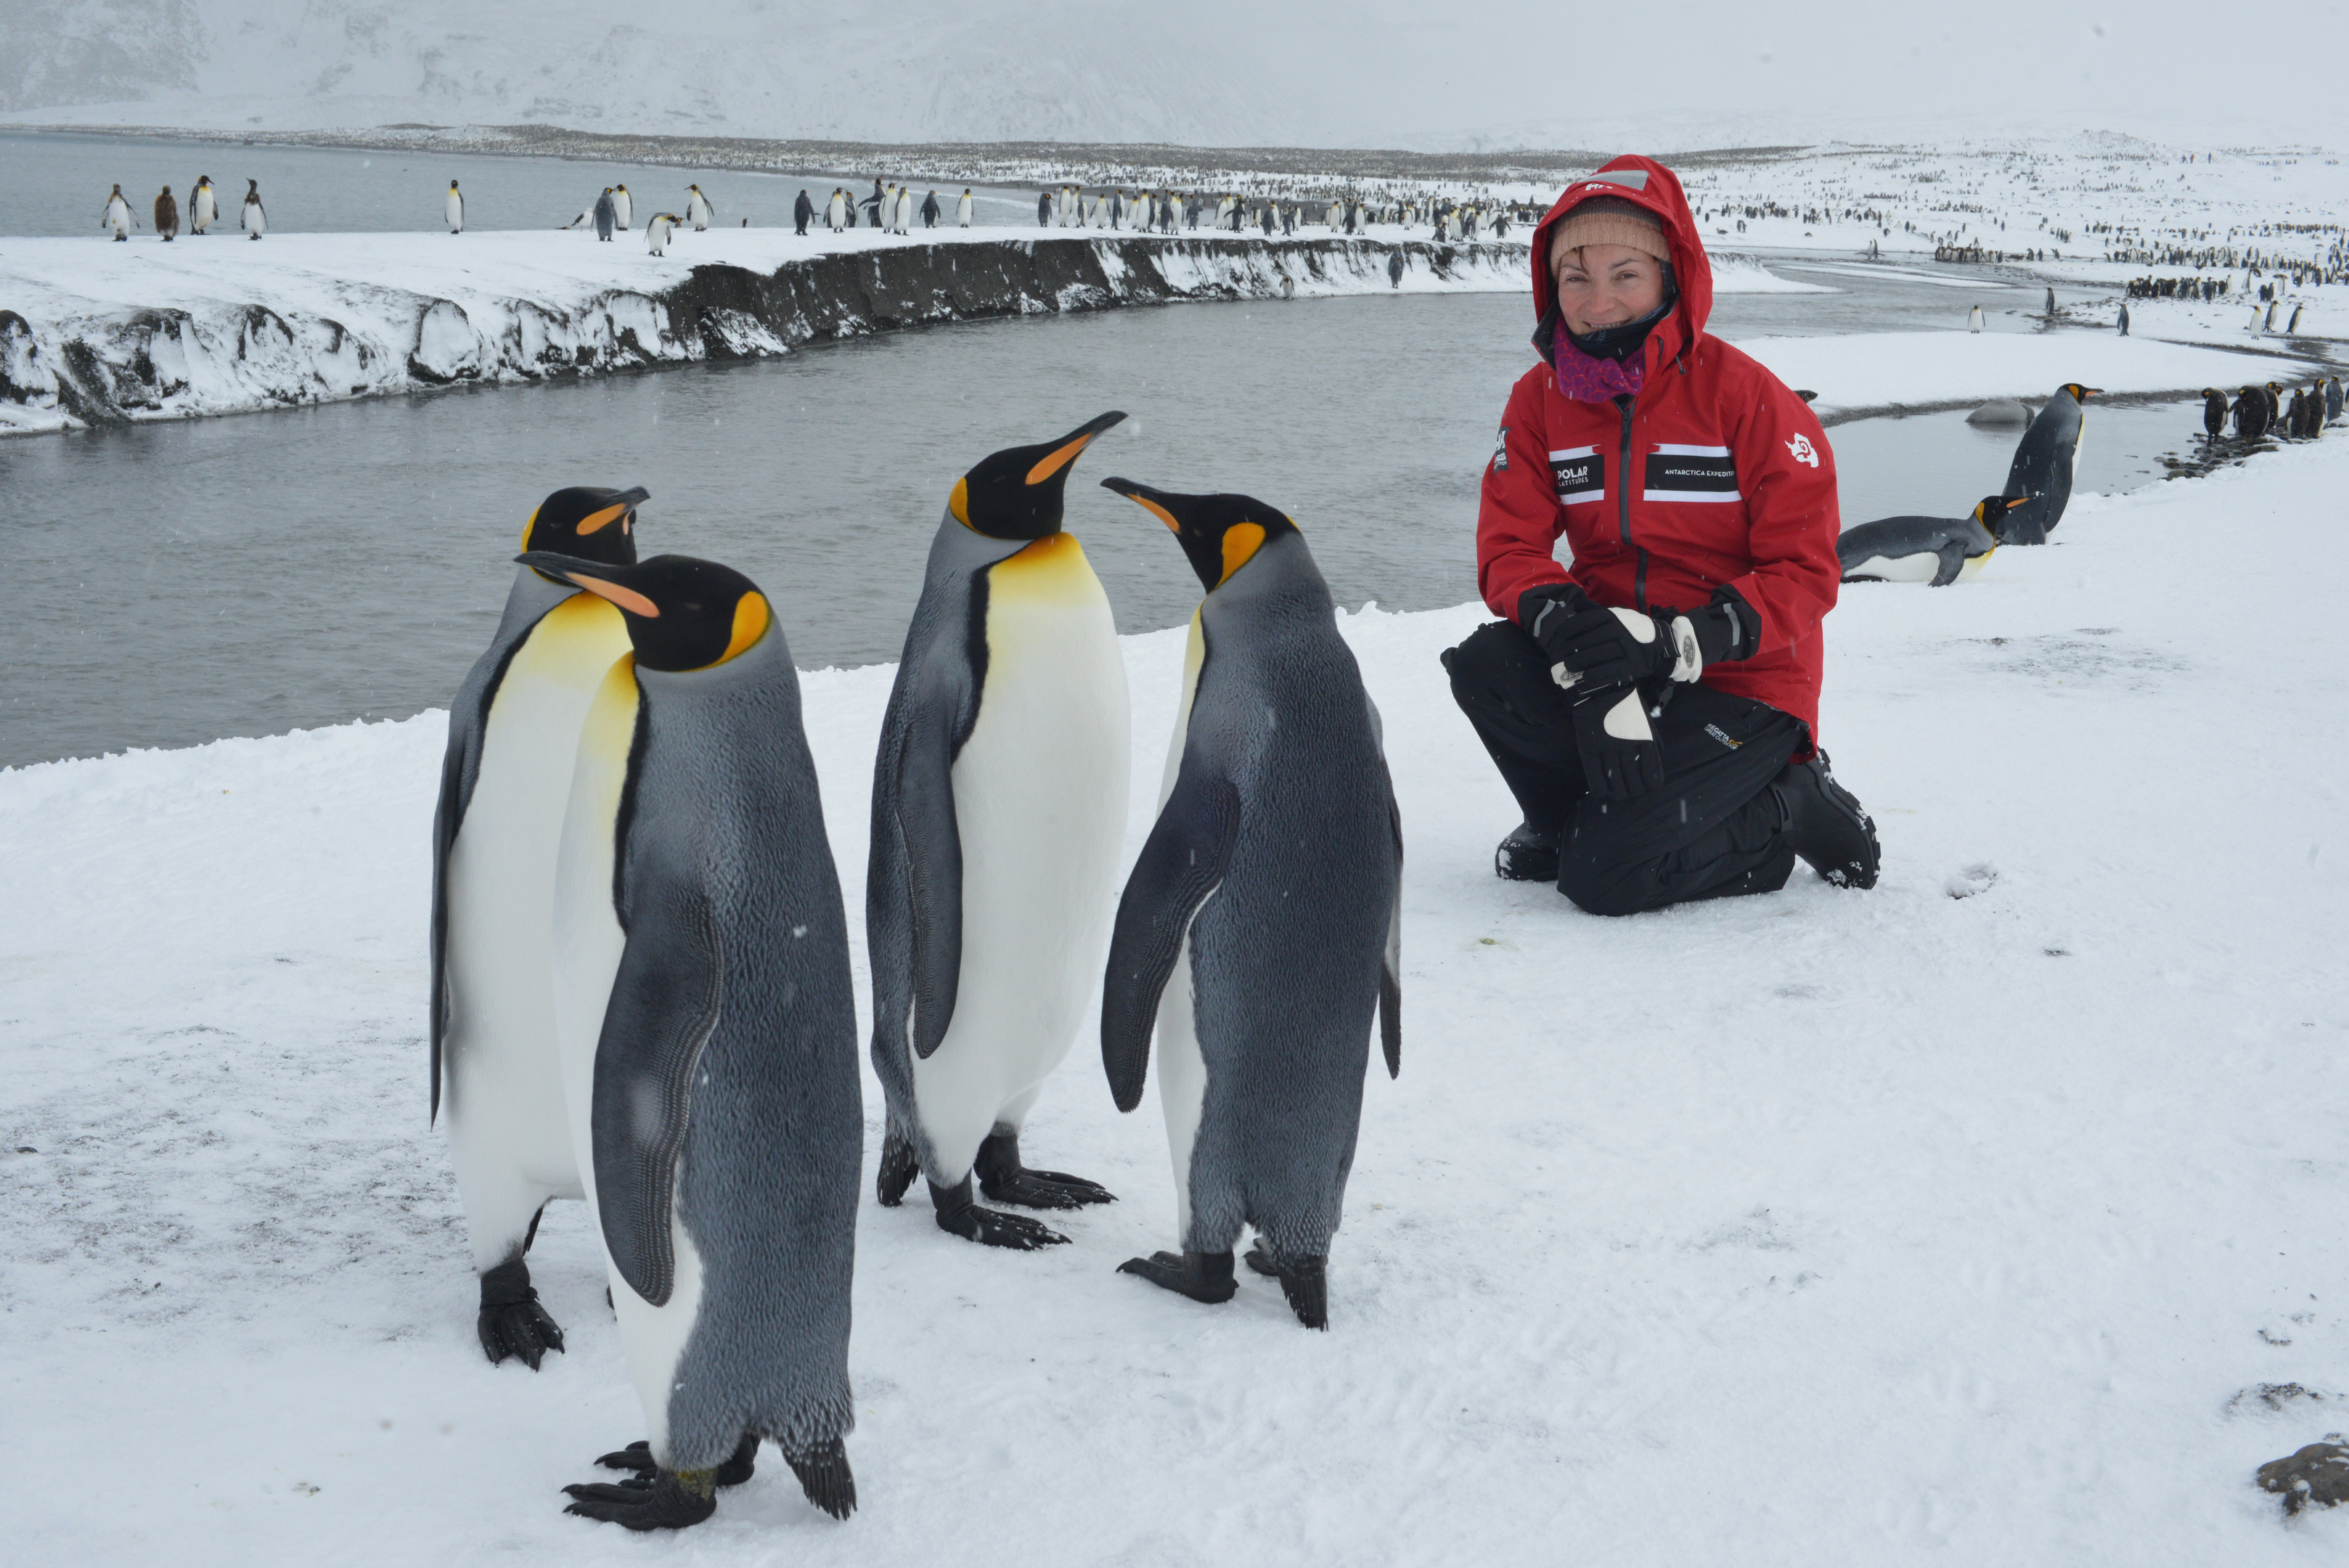 Lorraine Kelly with some penguins. (Steve Smith)